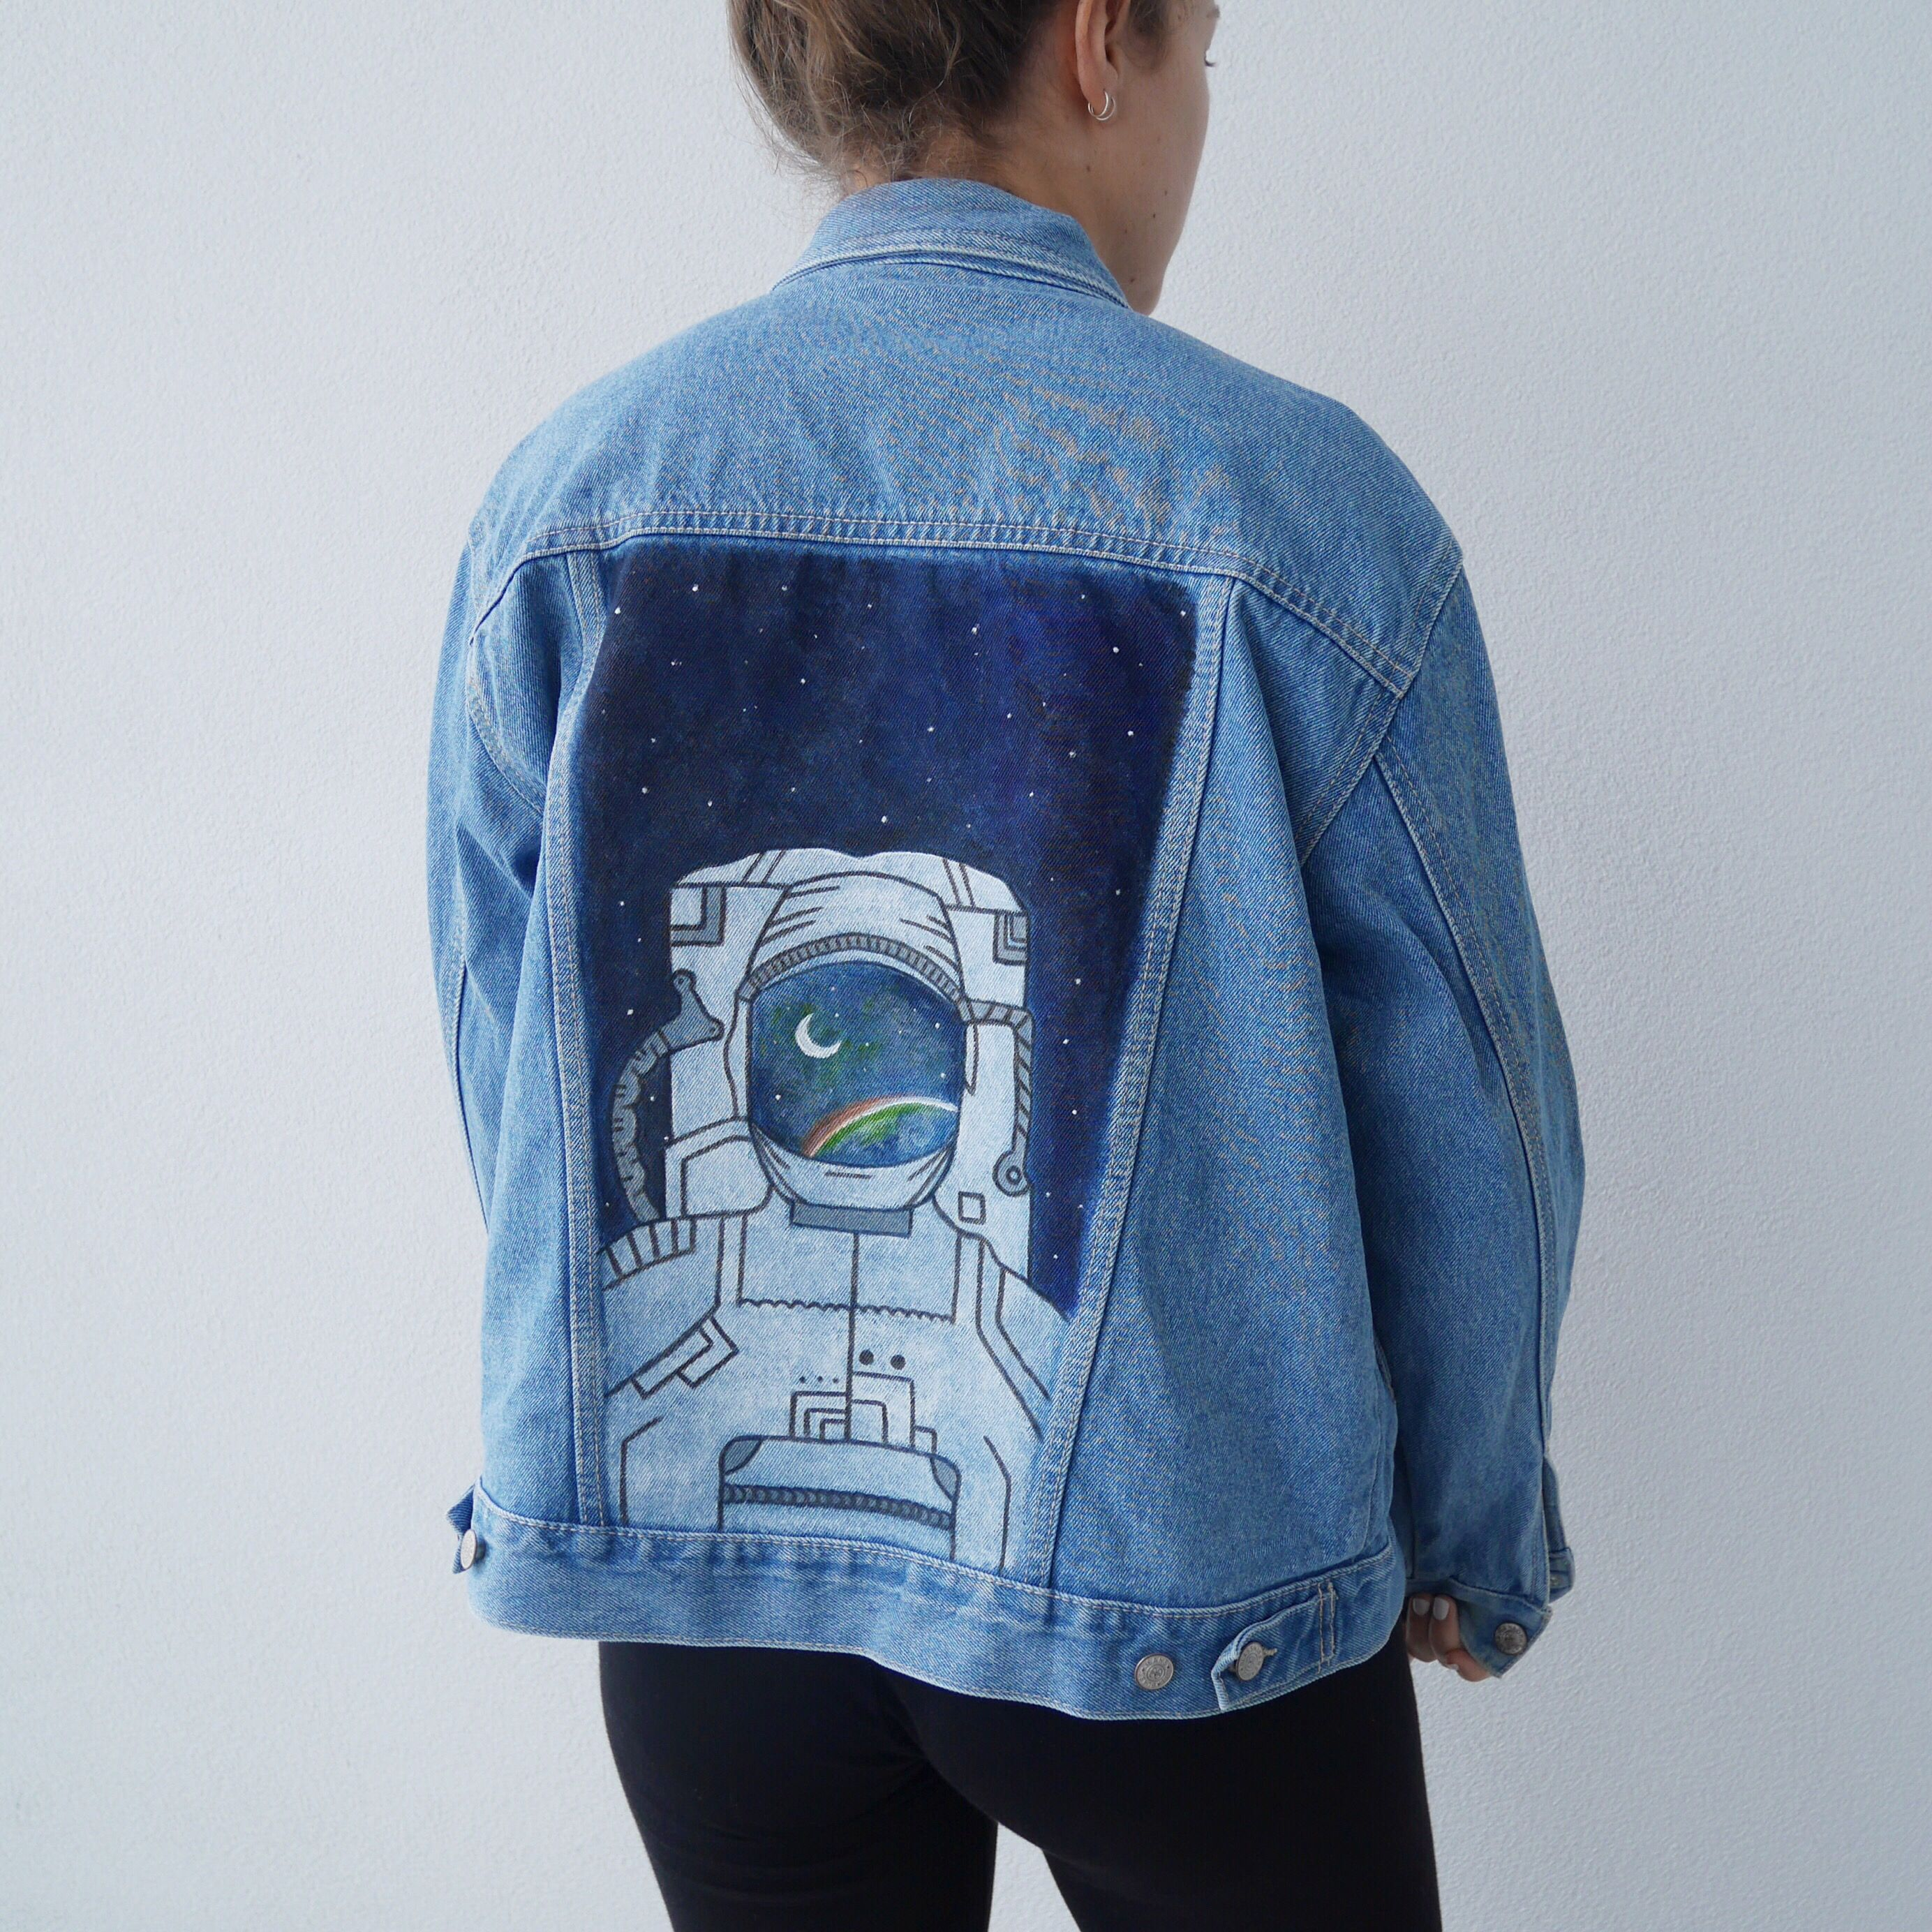 Hand painted Oversized Vintage Denim Jacket! On Etsy! Astronaut in space  watching the sunrise.  Maybe I belong among stars  796d321942